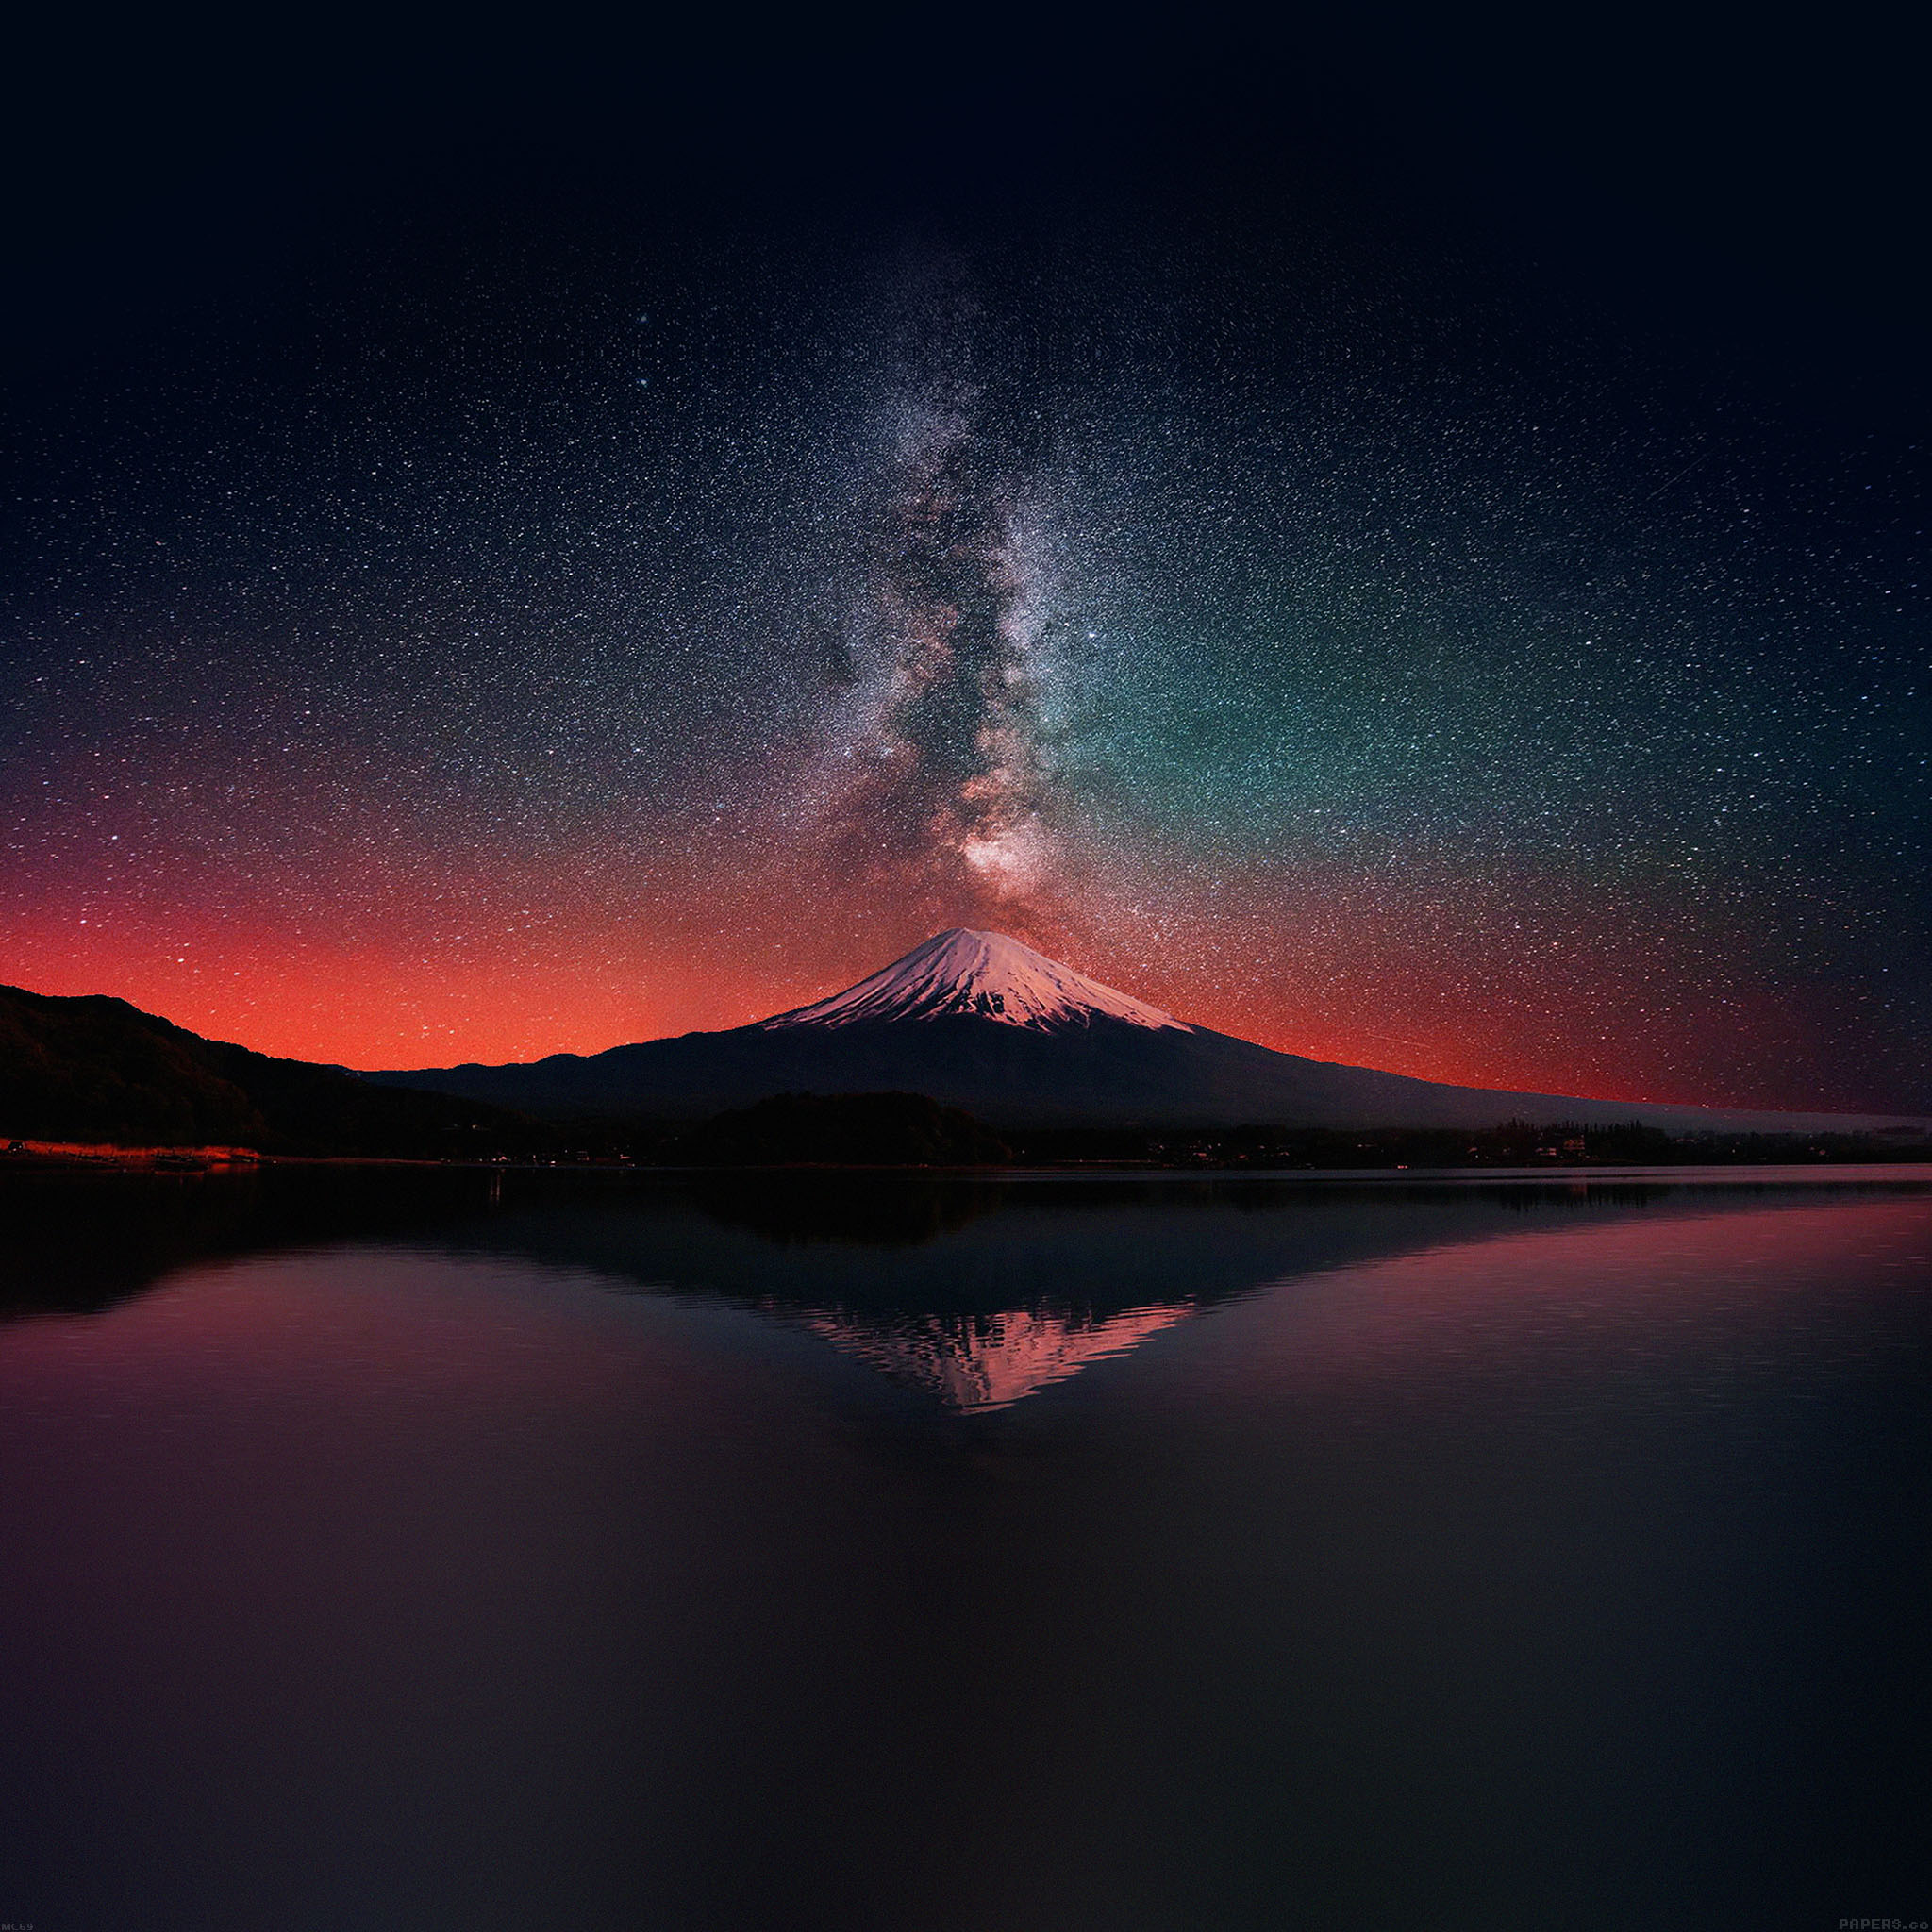 Best Car Wallpapers For Desktop Mc69 Wallpaper Milky Way On Dark Mountain Fuji Sky Papers Co